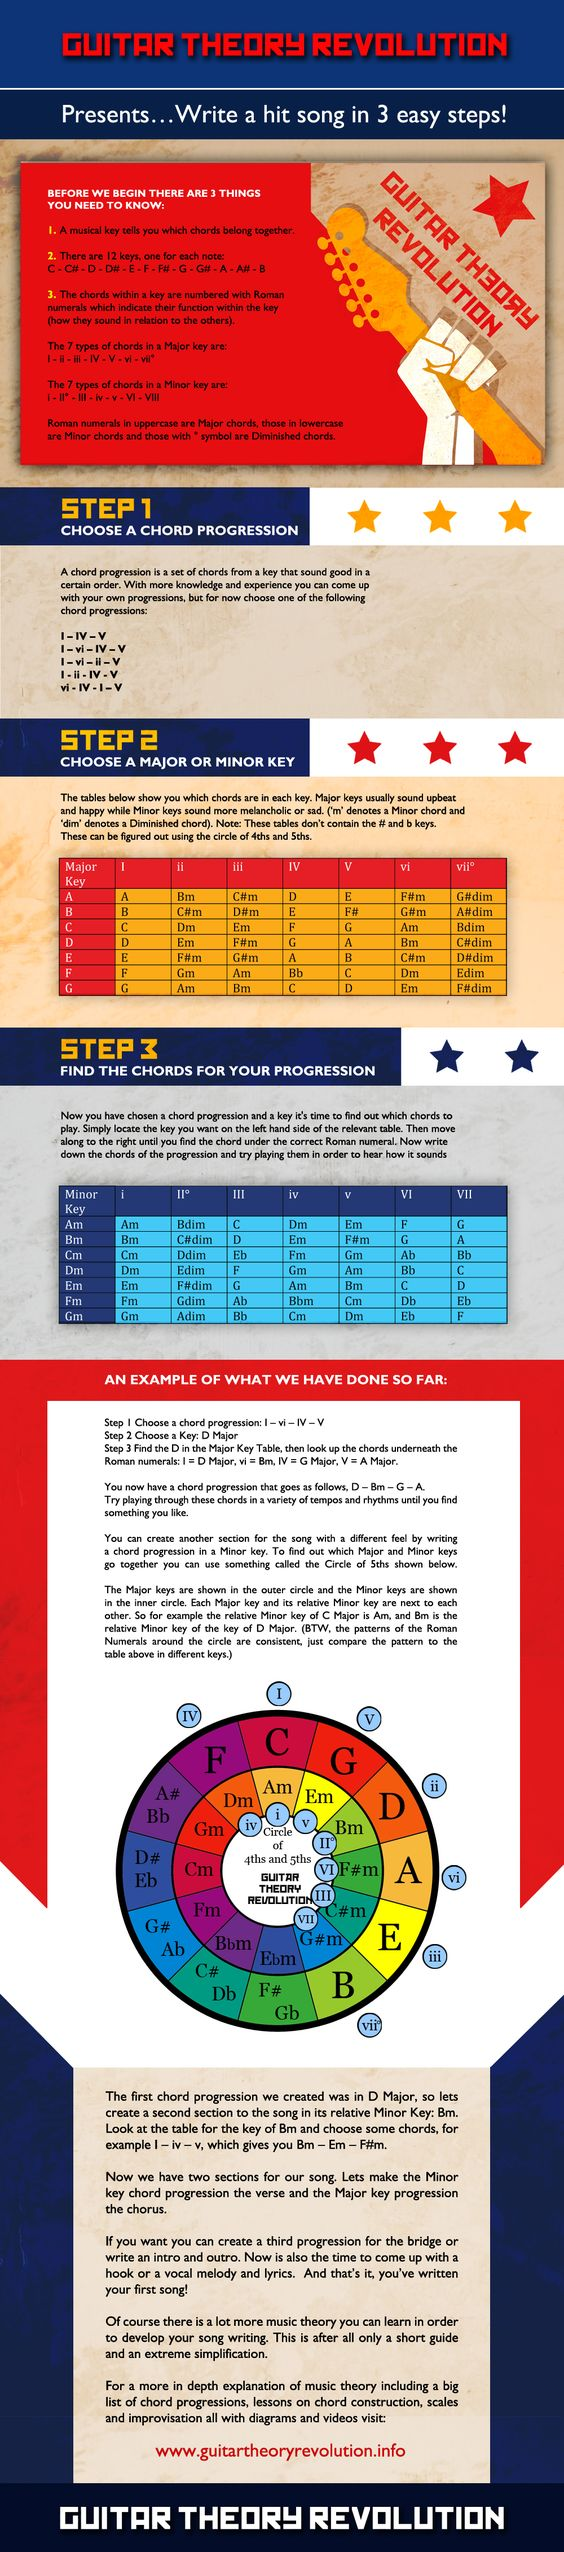 Write A Hit Song In 3 Easy Steps By Guitar Theory Revolution                                                                                                                                                      More